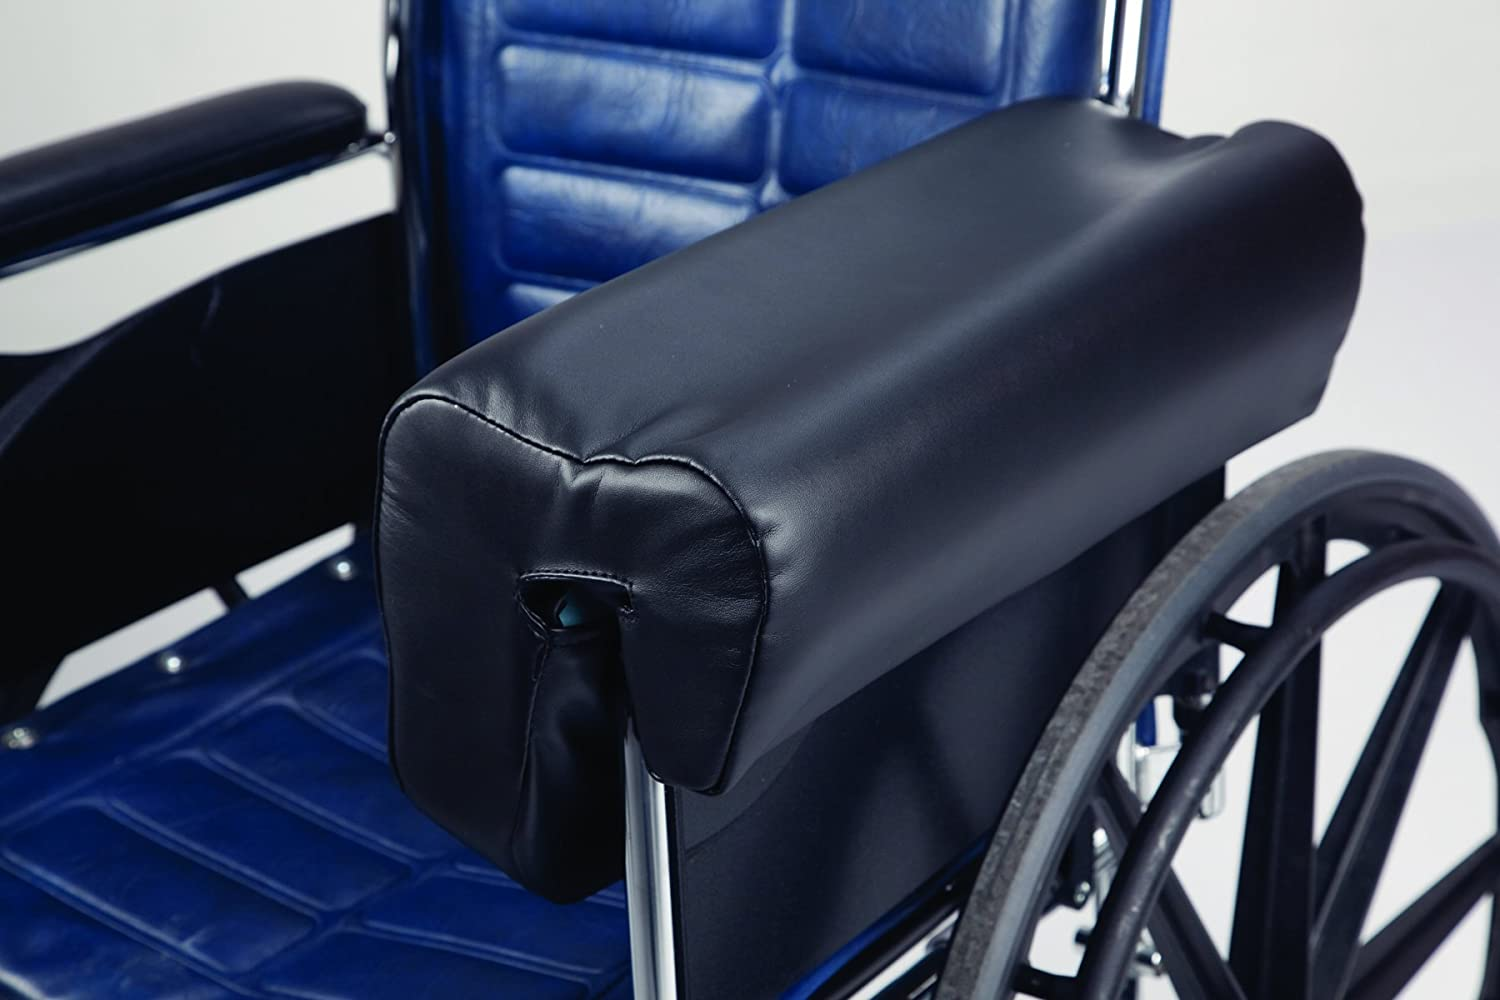 Secure SDAS-1 Wheelchair Arm Rest Lateral Support Cushion - High Density Foam Positioning Pad for Left or Right Armrest